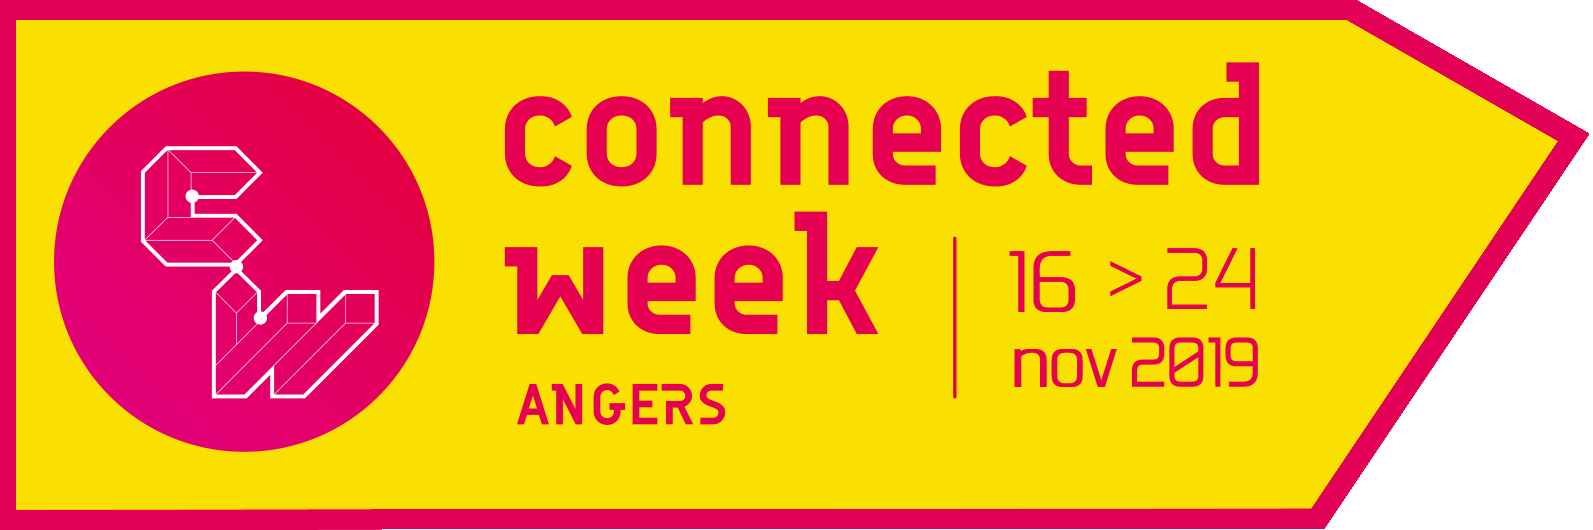 logo connected week angers